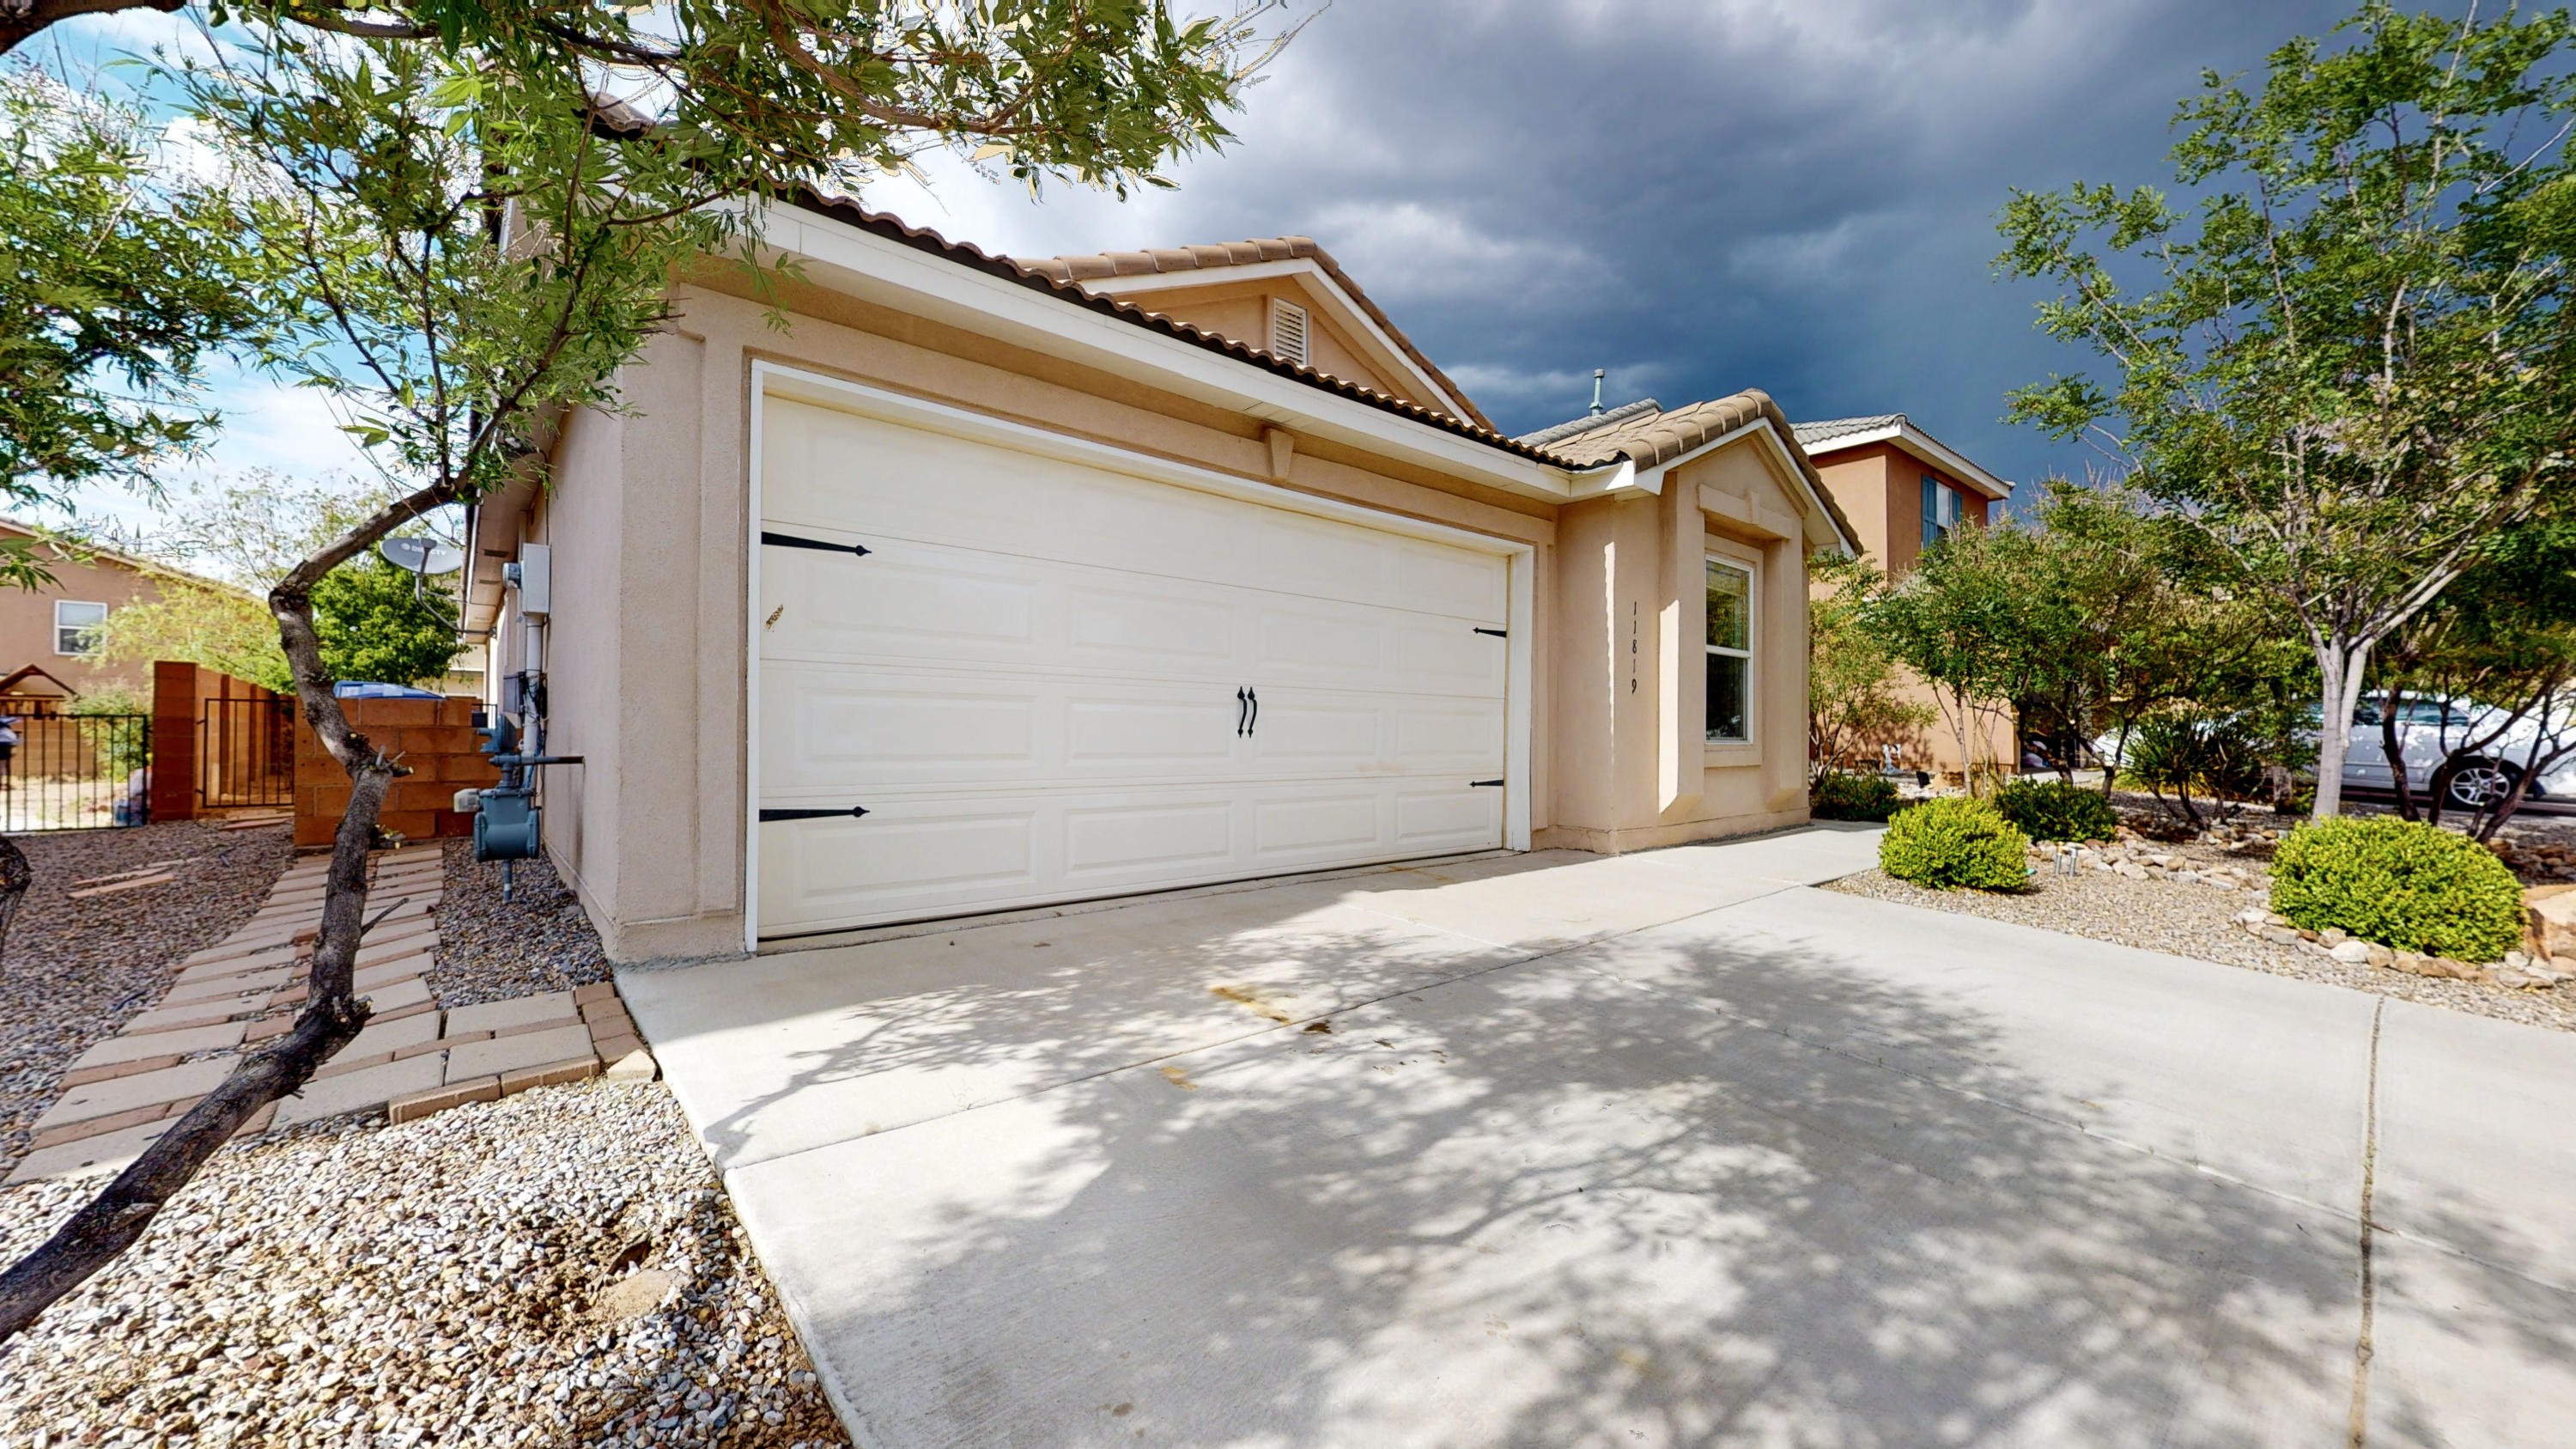 Volterra, NO PID... convenient to KAFB, Sandia National Labs, and I40. Move-in-Ready home with an open floor plan offering 2+ living areas (vaulted ceilings in main living, kitchen and dining area), 3 bedrooms, 2 bathrooms, 2 car garage.